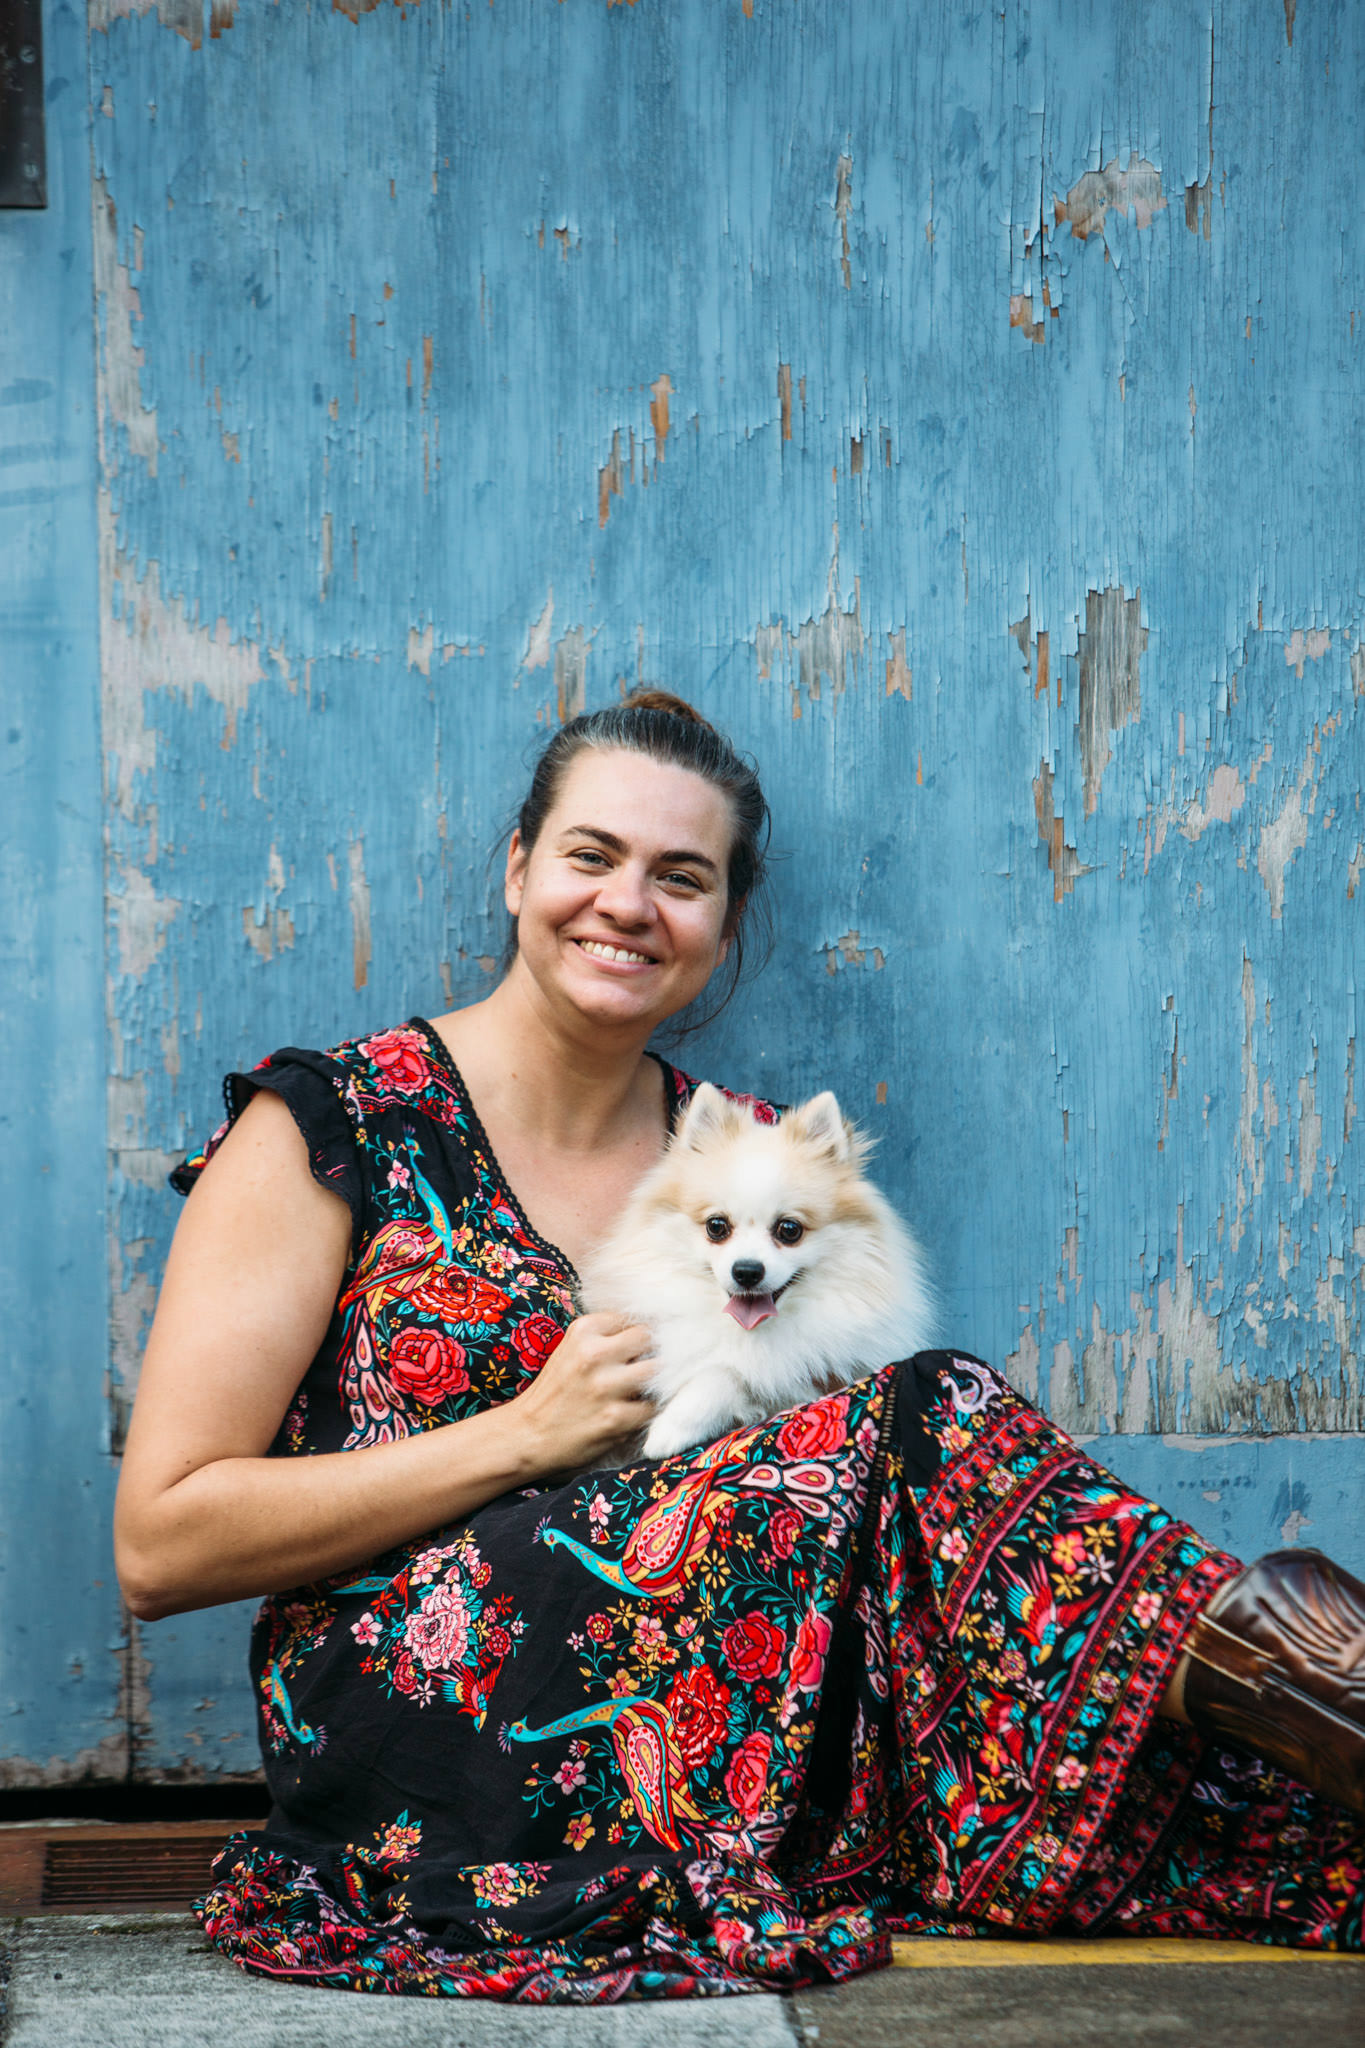 Brisbane Wedding Photographer for Natural Photography Lara Furst holding Duke the dog